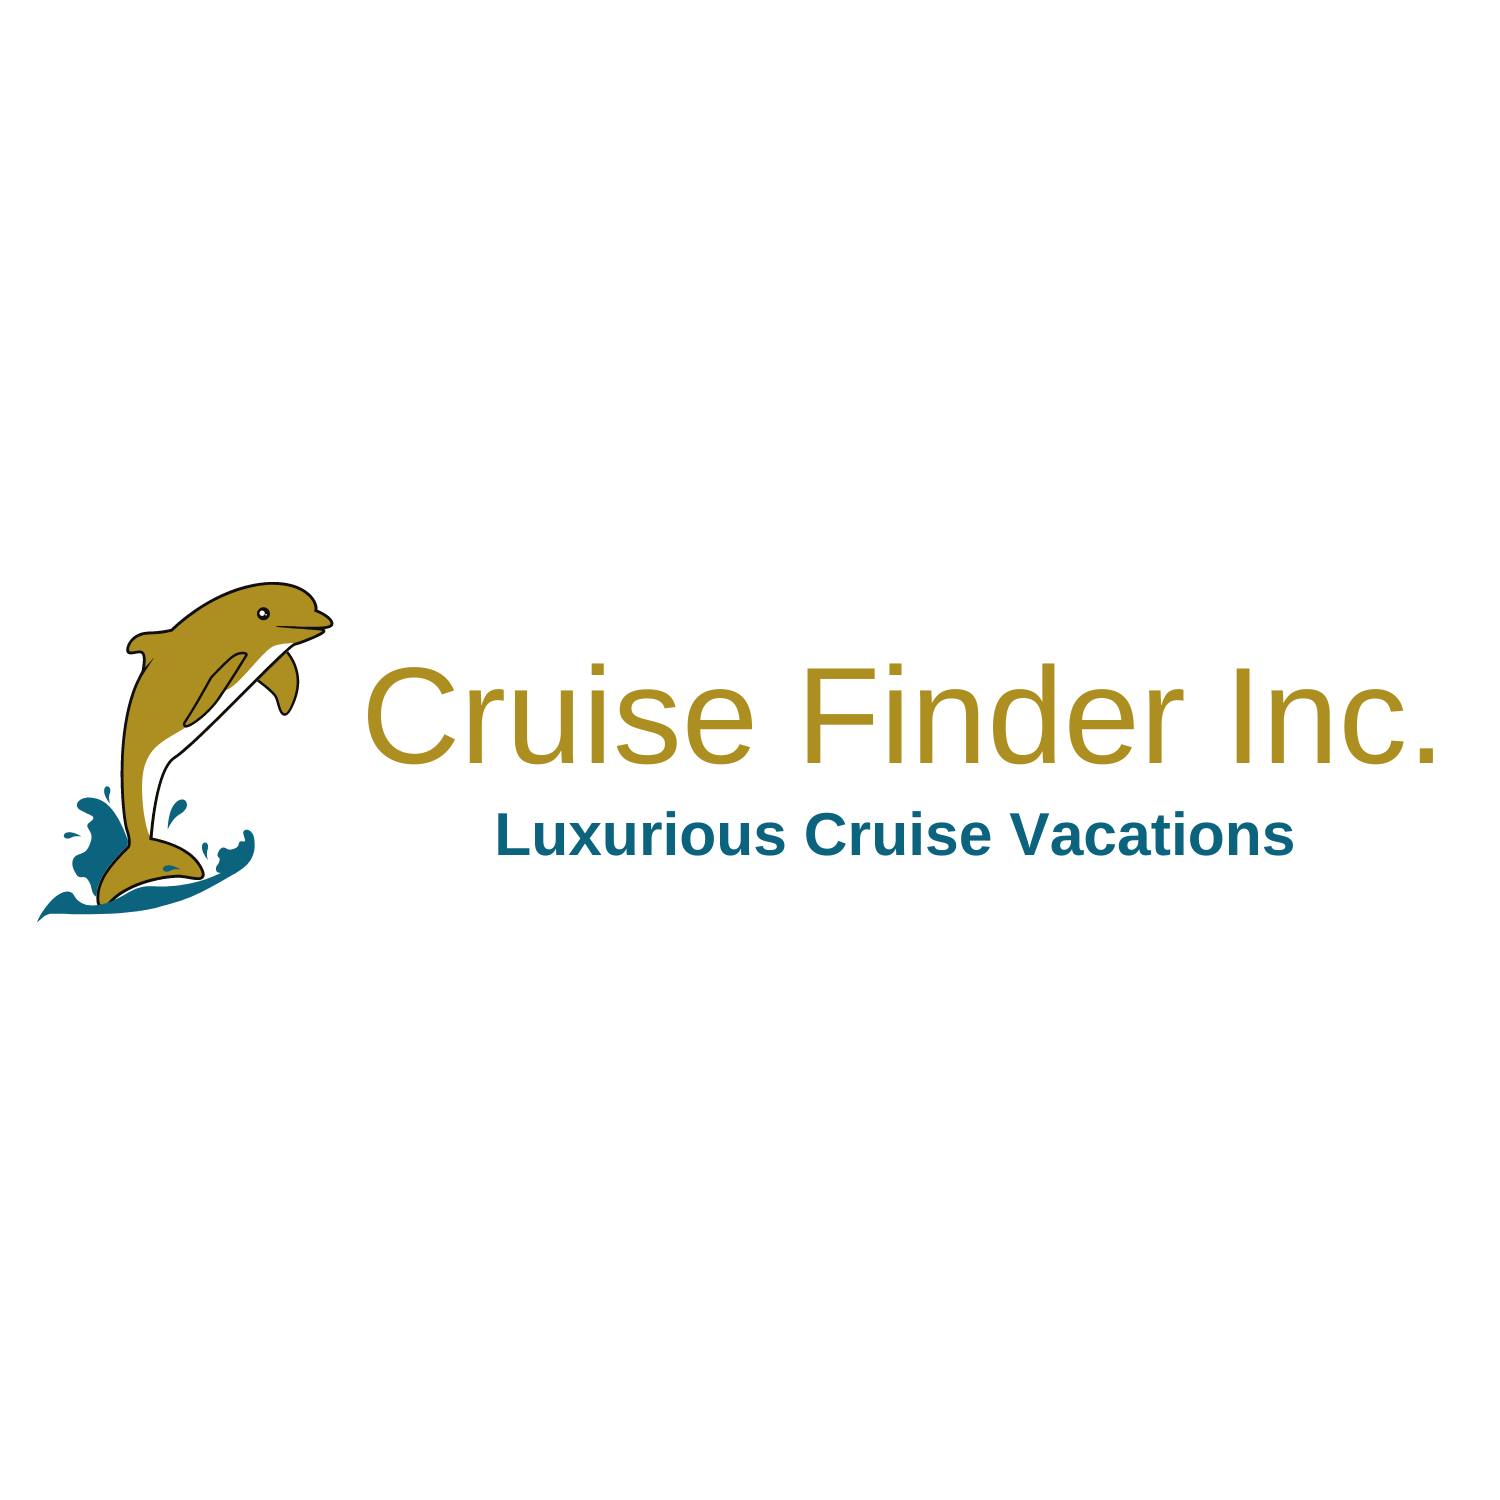 Luxury Cruise Agency